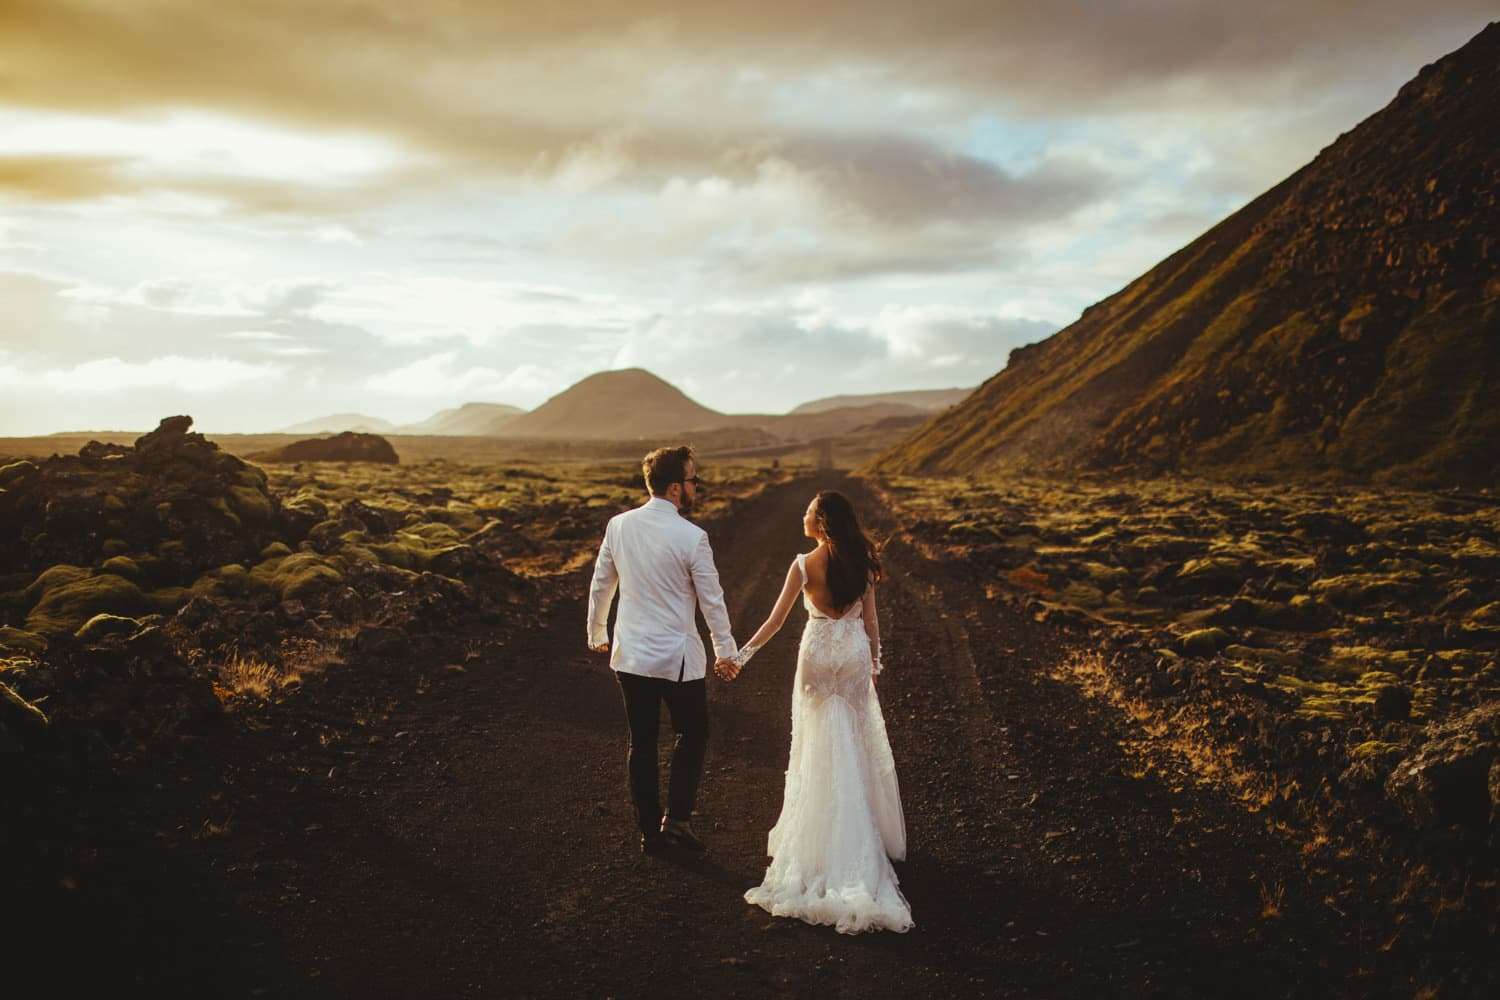 A newlywed bride and groom walk hand-in-hand down a dirt path in beautiful Iceland for wedding photos with Magic Wedding Photographer in Europe.